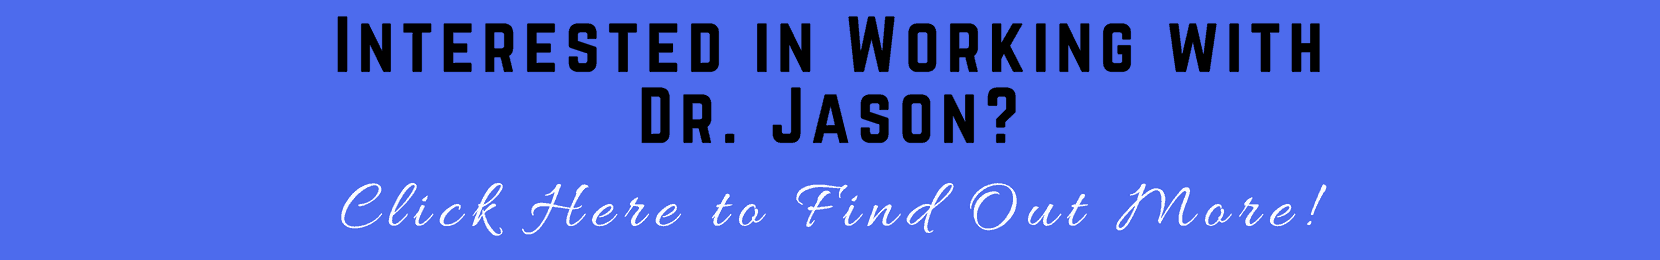 Dr. Jason Carthen: Work with Me